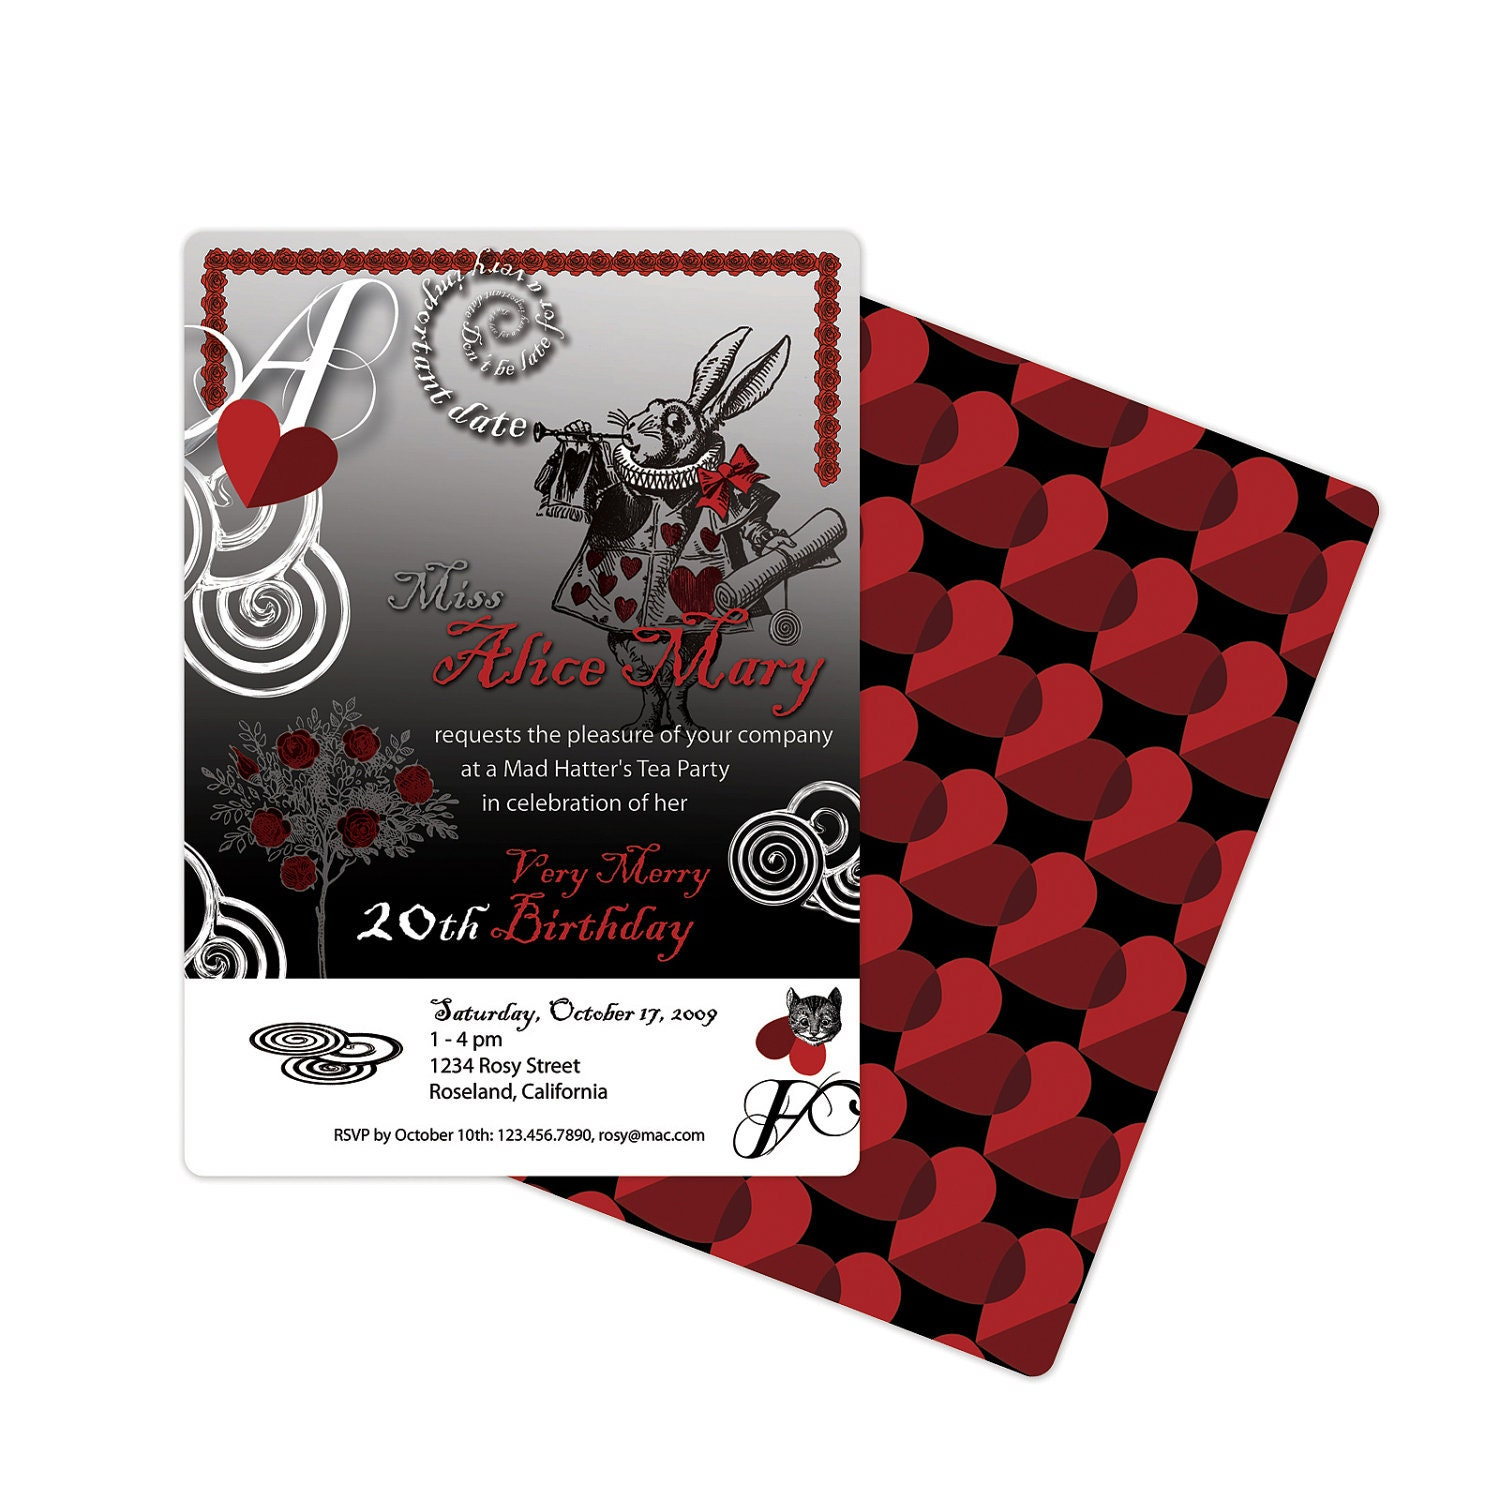 Playing card invite – Playing Card Invitation